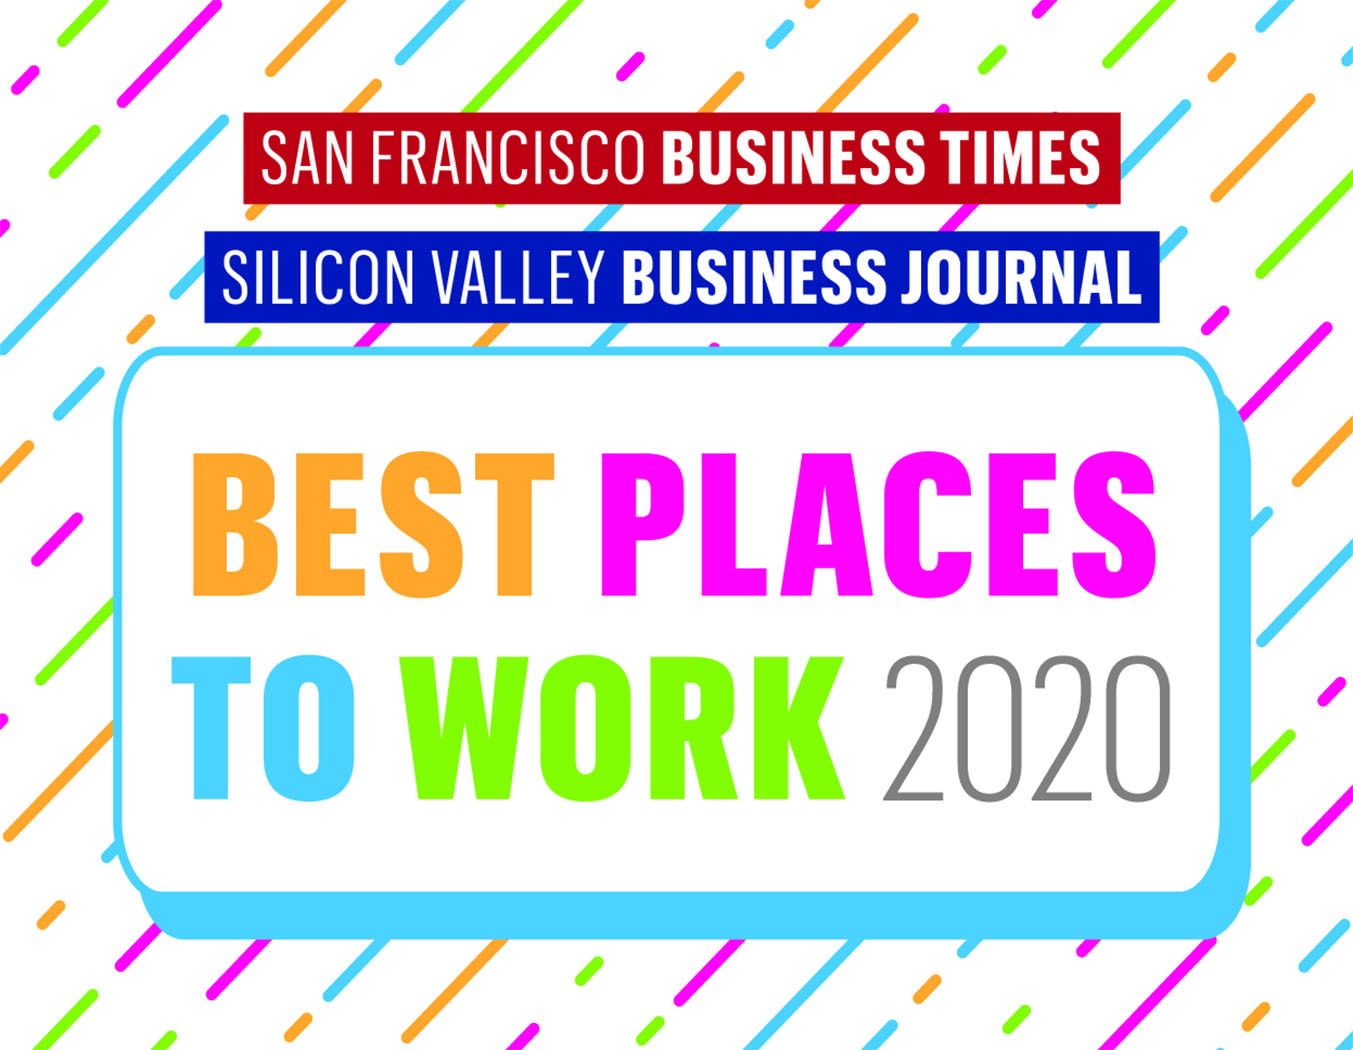 2020 best places to work SF Business Times